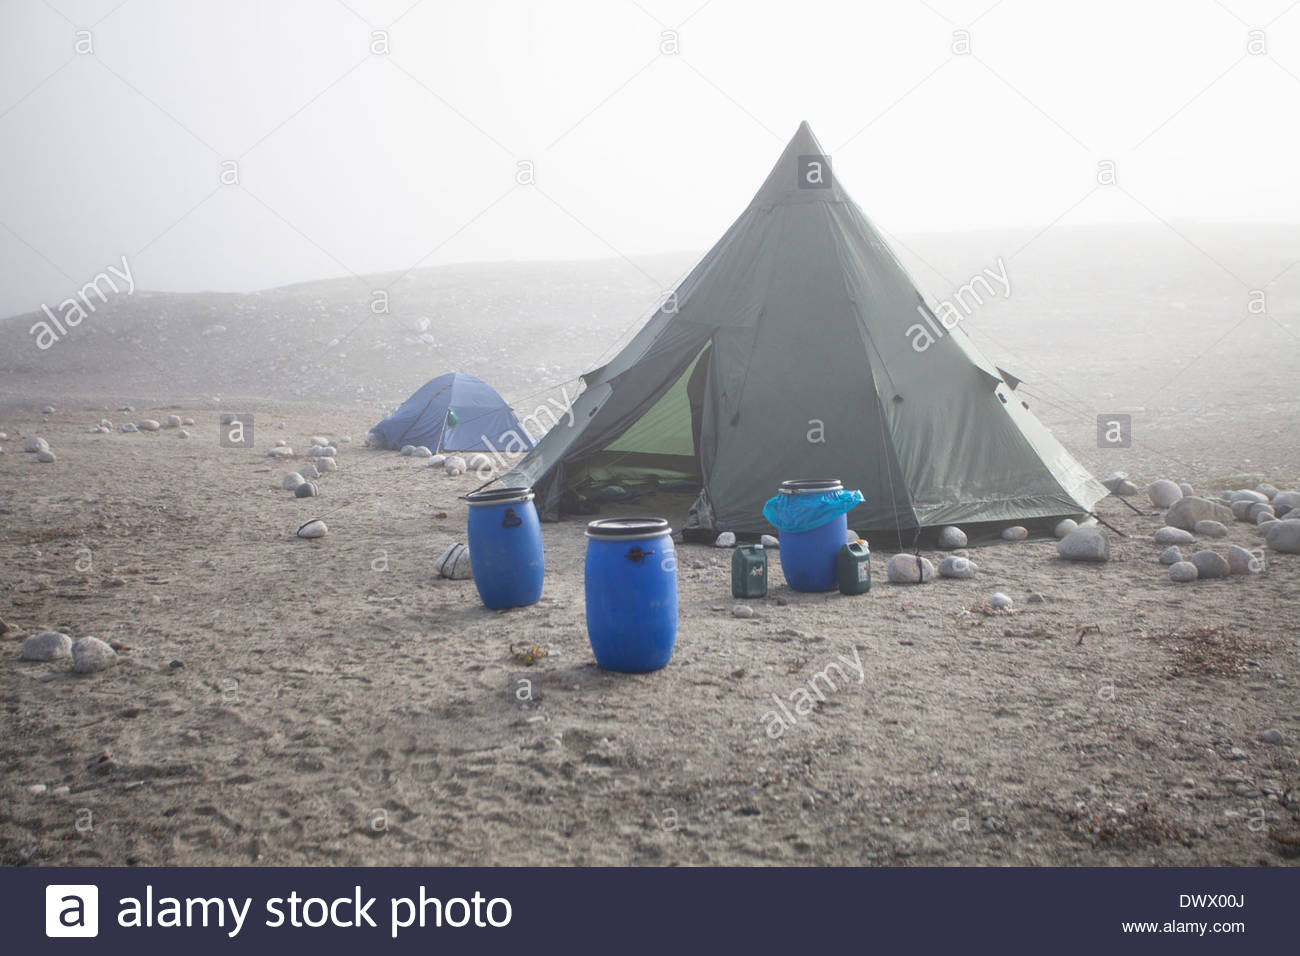 View of barrels near camping tents - Stock Image